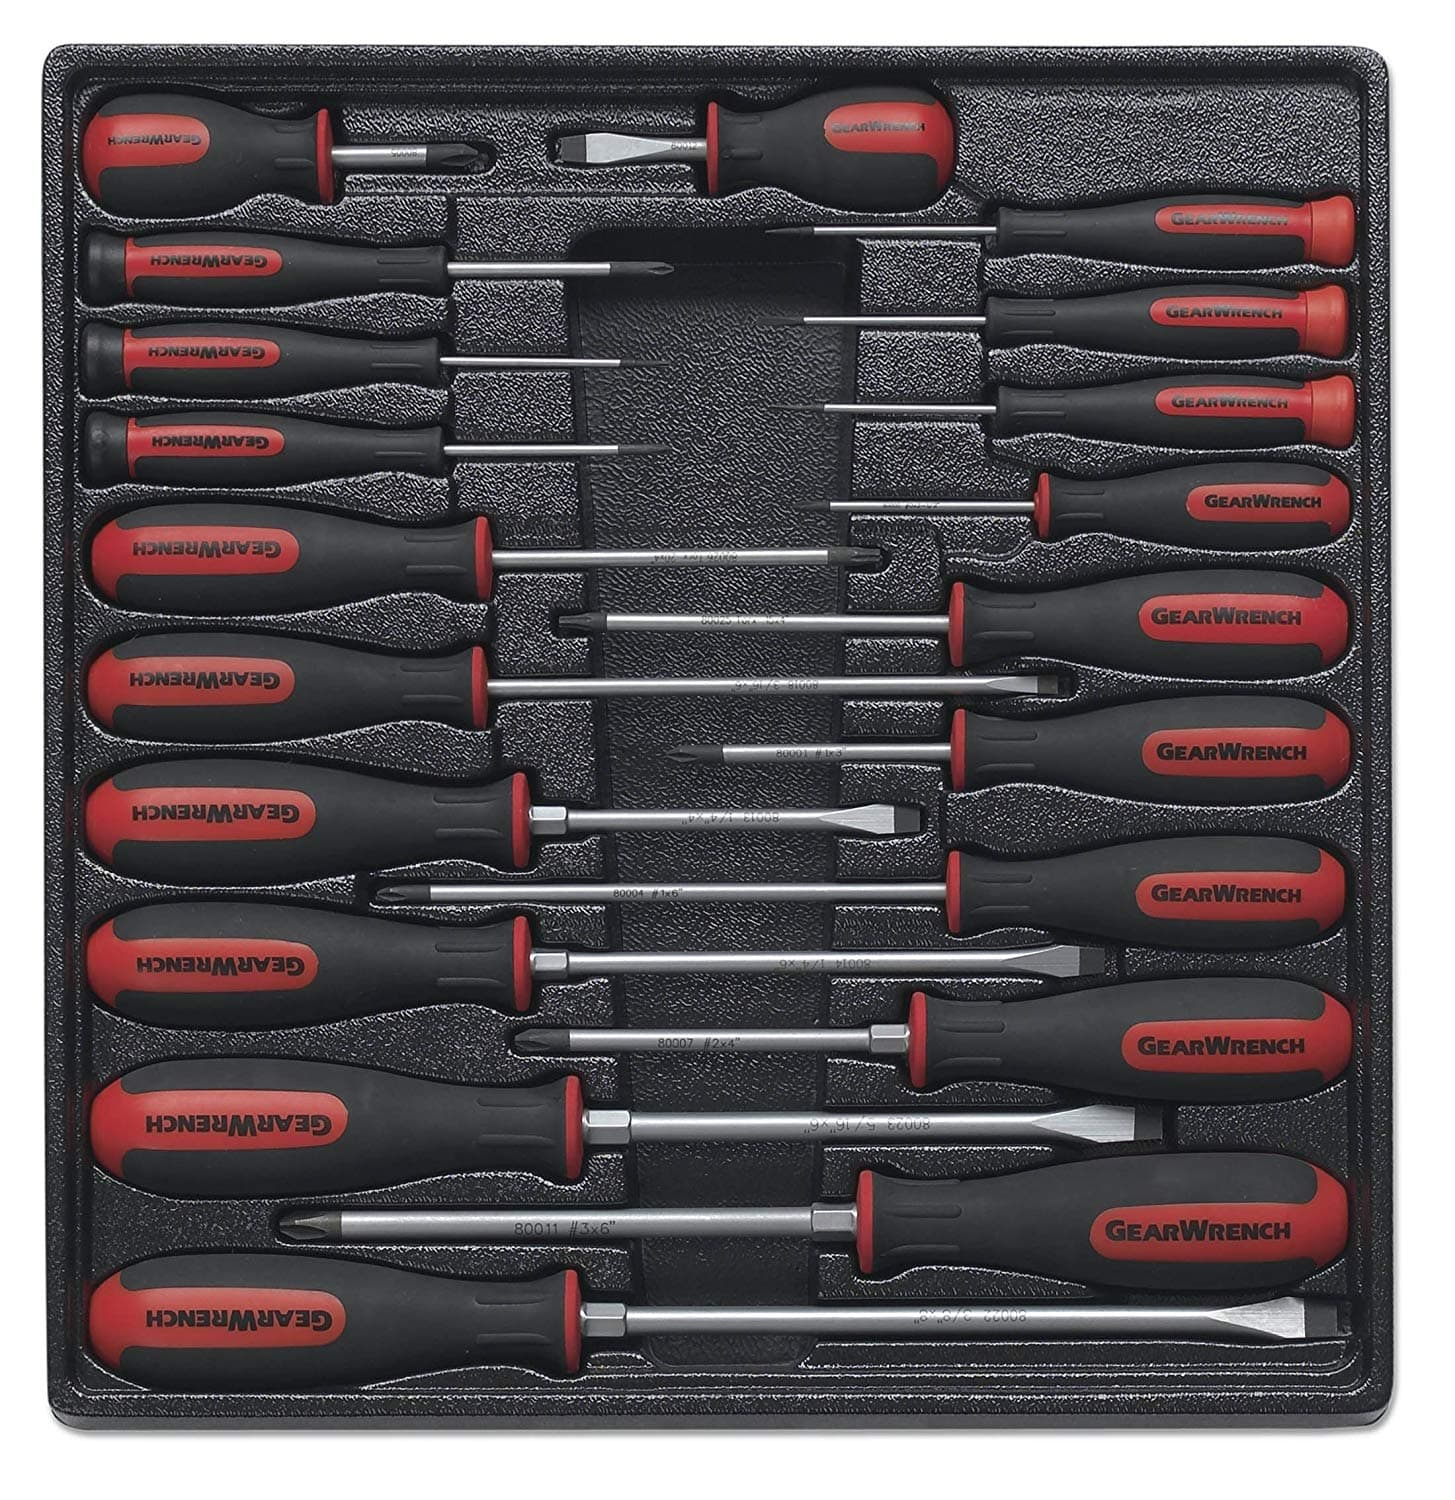 GEARWRENCH 80066 20pc driver set $58.09